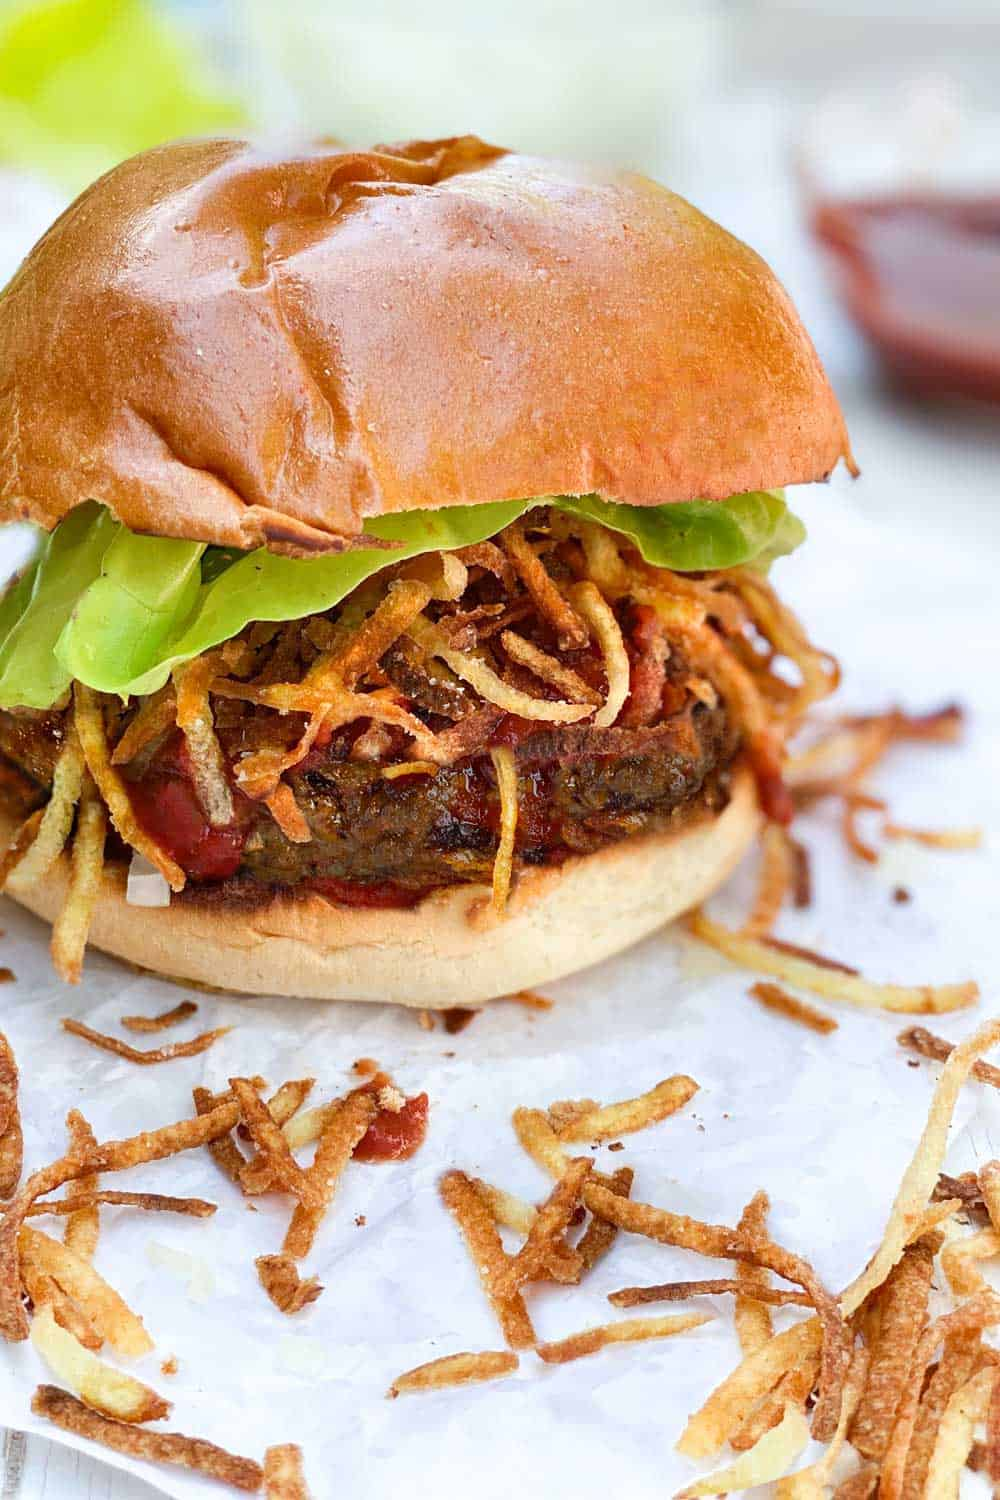 A Cuban frita burger topped with shoestring fries and a lettuce leaf, in a bun, on a piece of white parchment